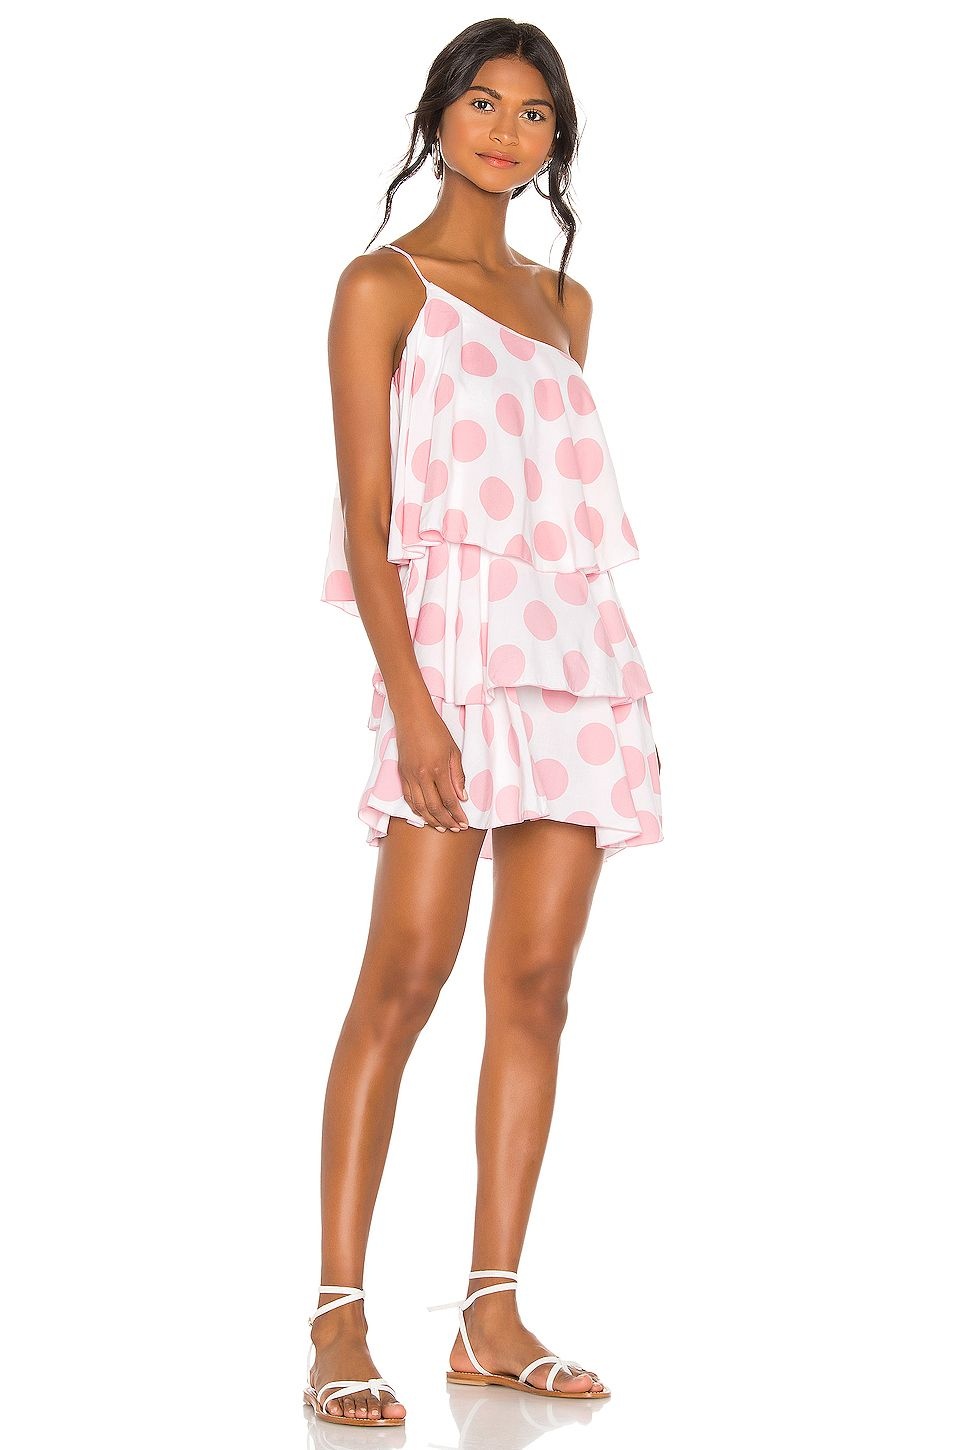 Lovers Friends Getaway Dress In Pink Dot Sponsored Aff Getaway Dot Pink Friends In 2020 Getaway Dress Fashion Clothes Women Dresses